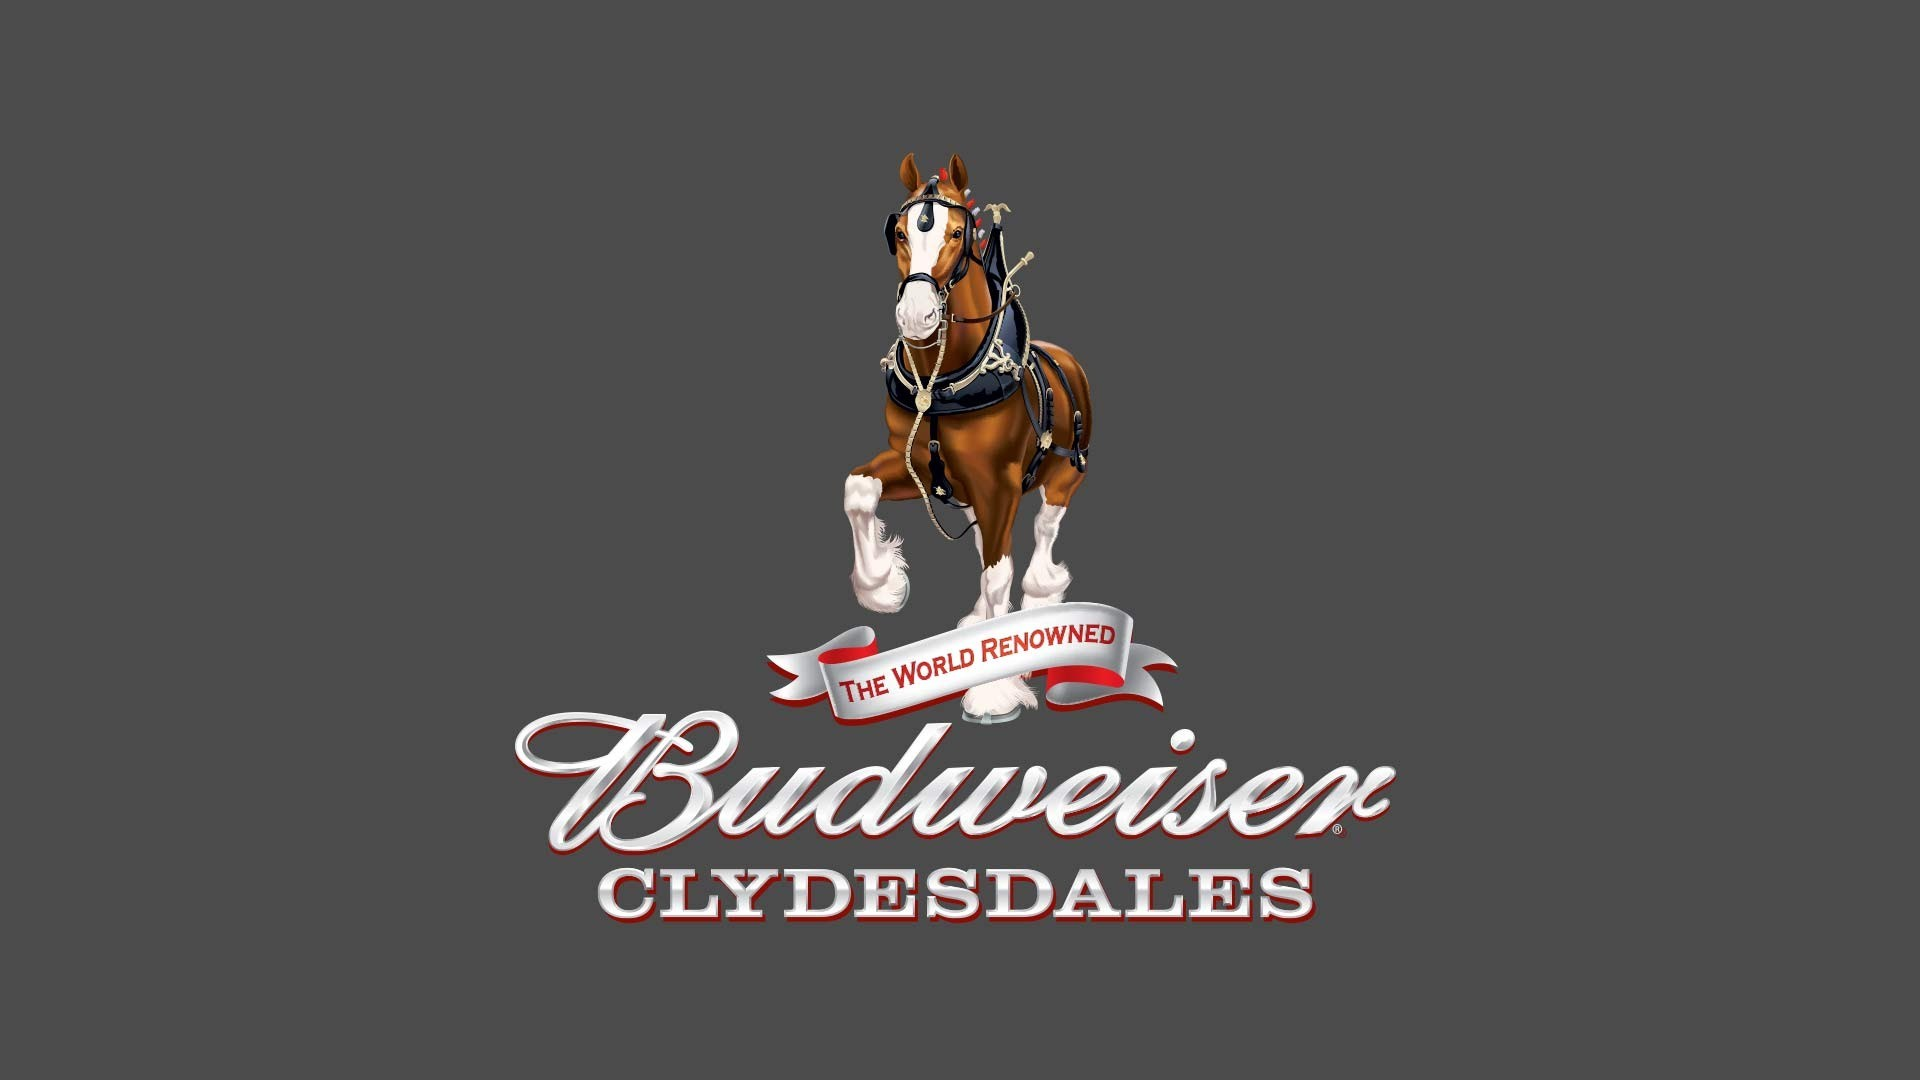 Res: 1920x1080, Budweiser Clydesdales in the Cincinnati Reds Opening Day parade